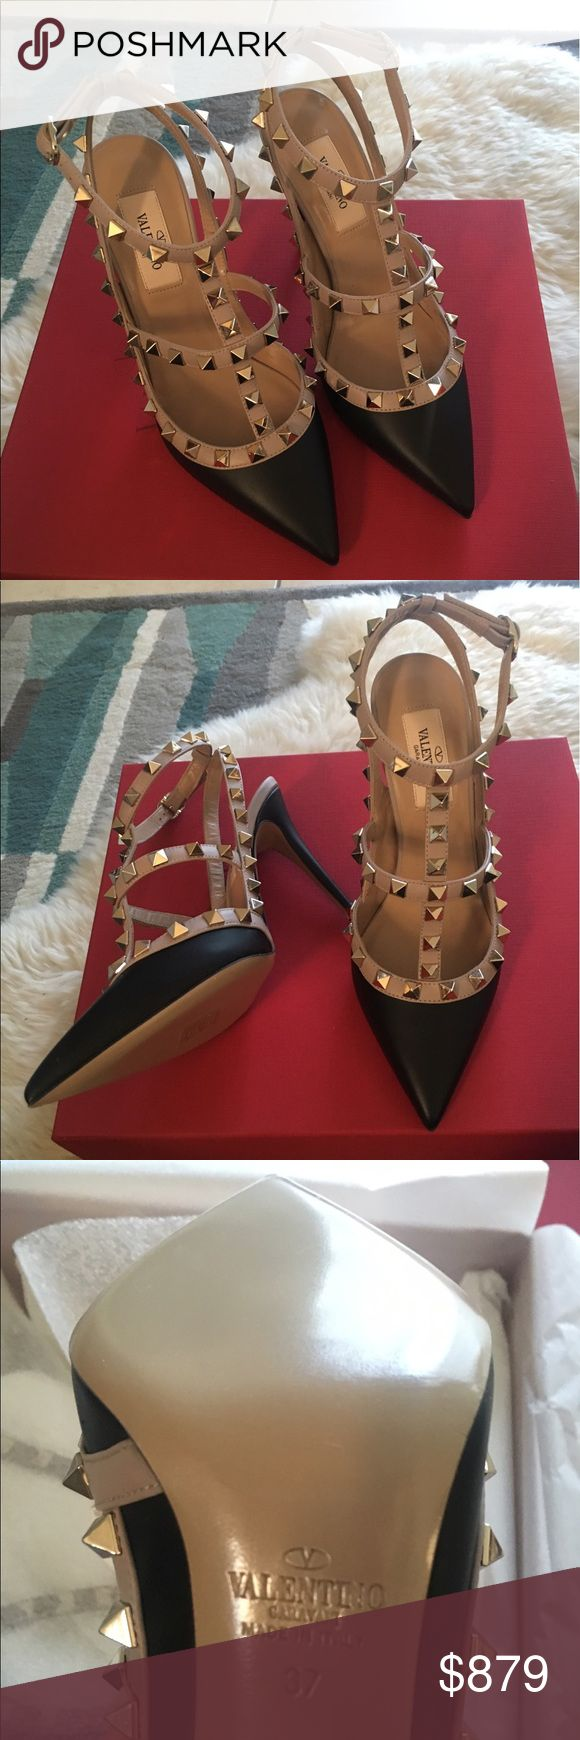 Valentino Rockstud pump New in box. Size 37. Black leather with three straps. Made in Italy Valentino Shoes Heels